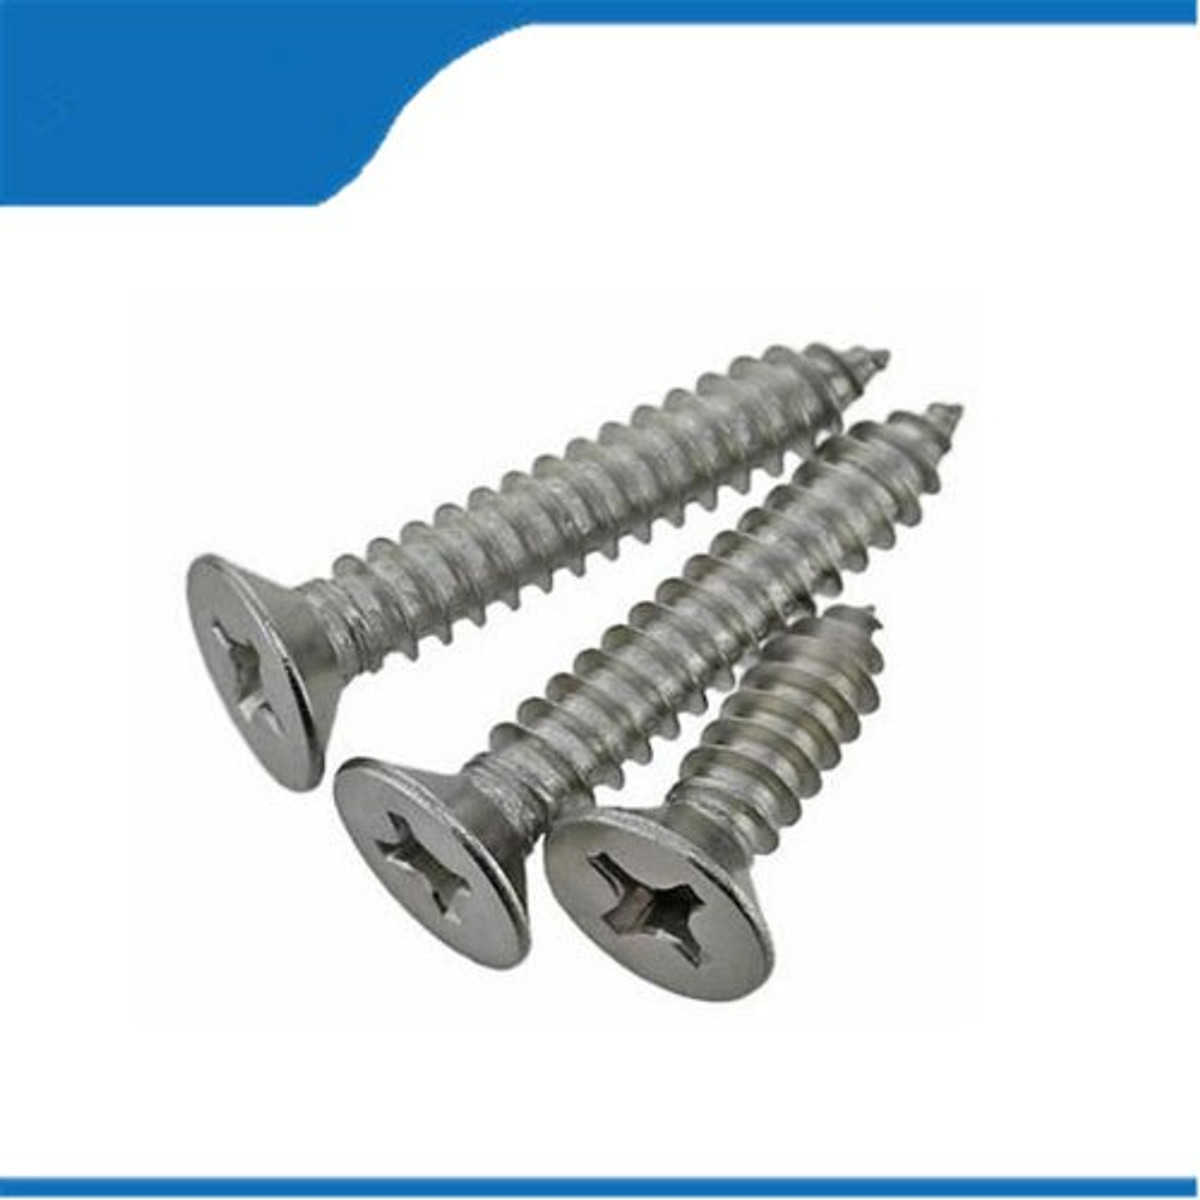 6 X 1/2 Sheet Metal Screw. Stainless Steel, Countersunk 82°. Phillips A Point